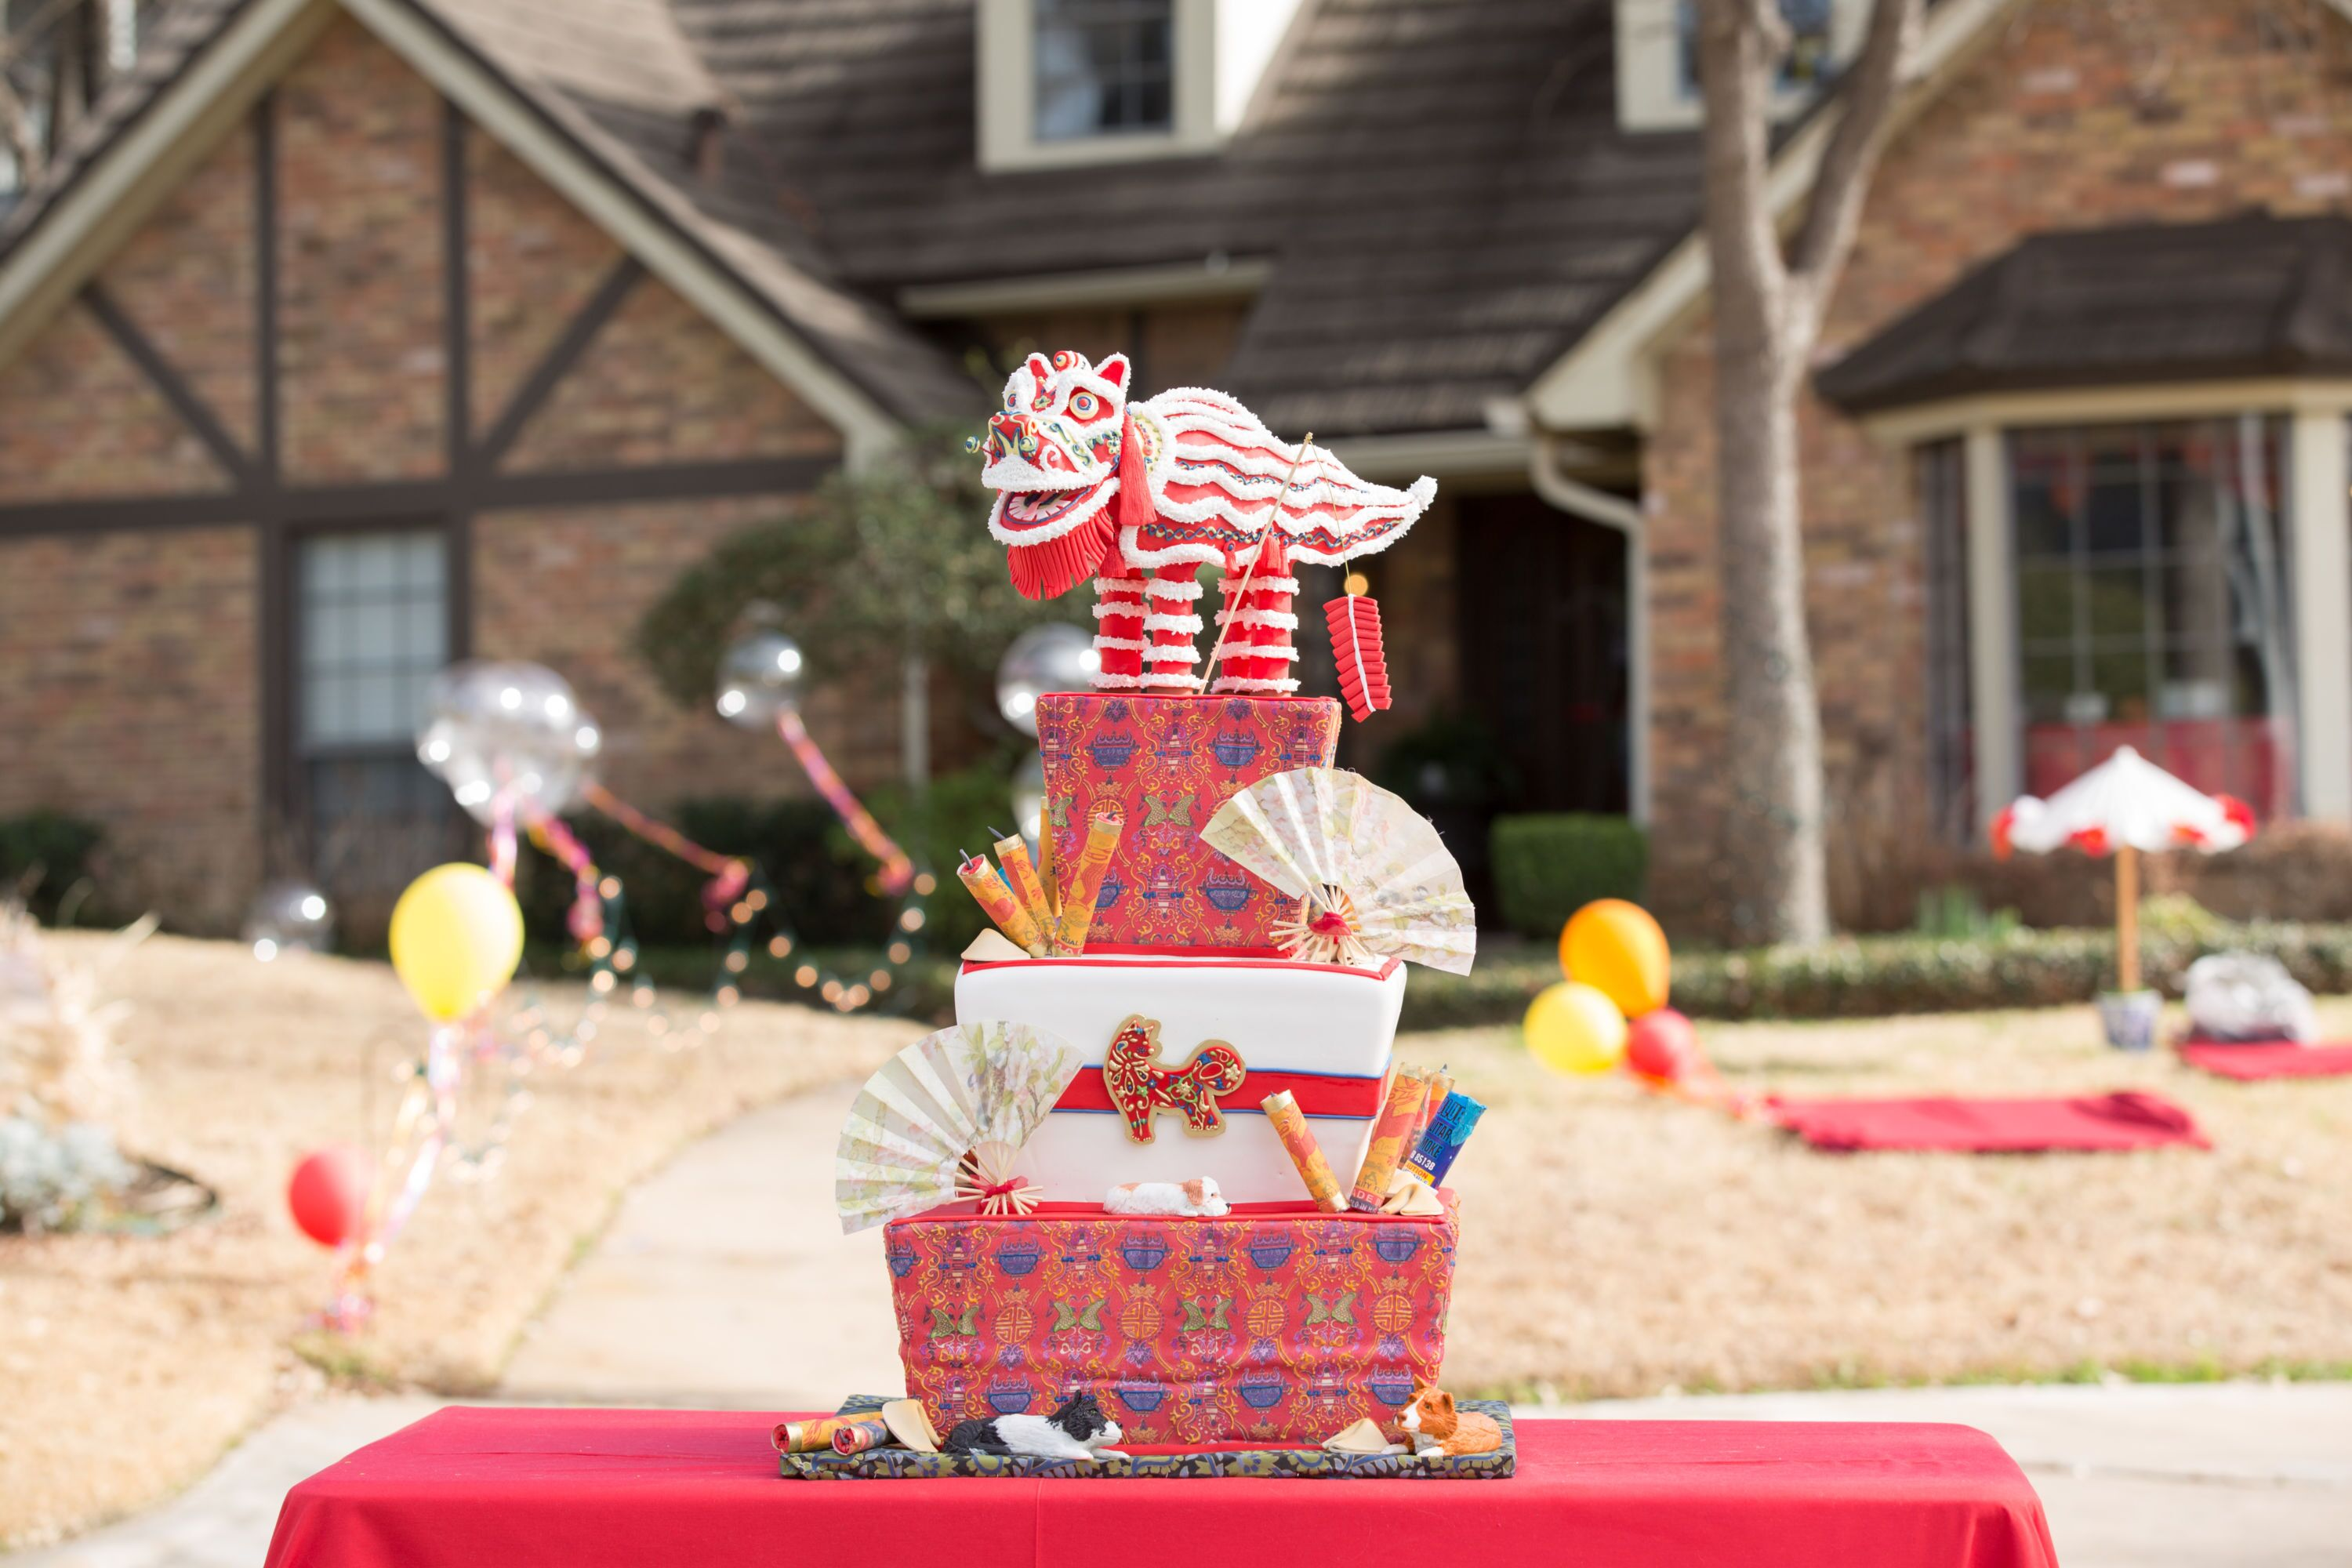 Food Networks Dallas Cakes Further Proves Everything Is Bigger In Texas